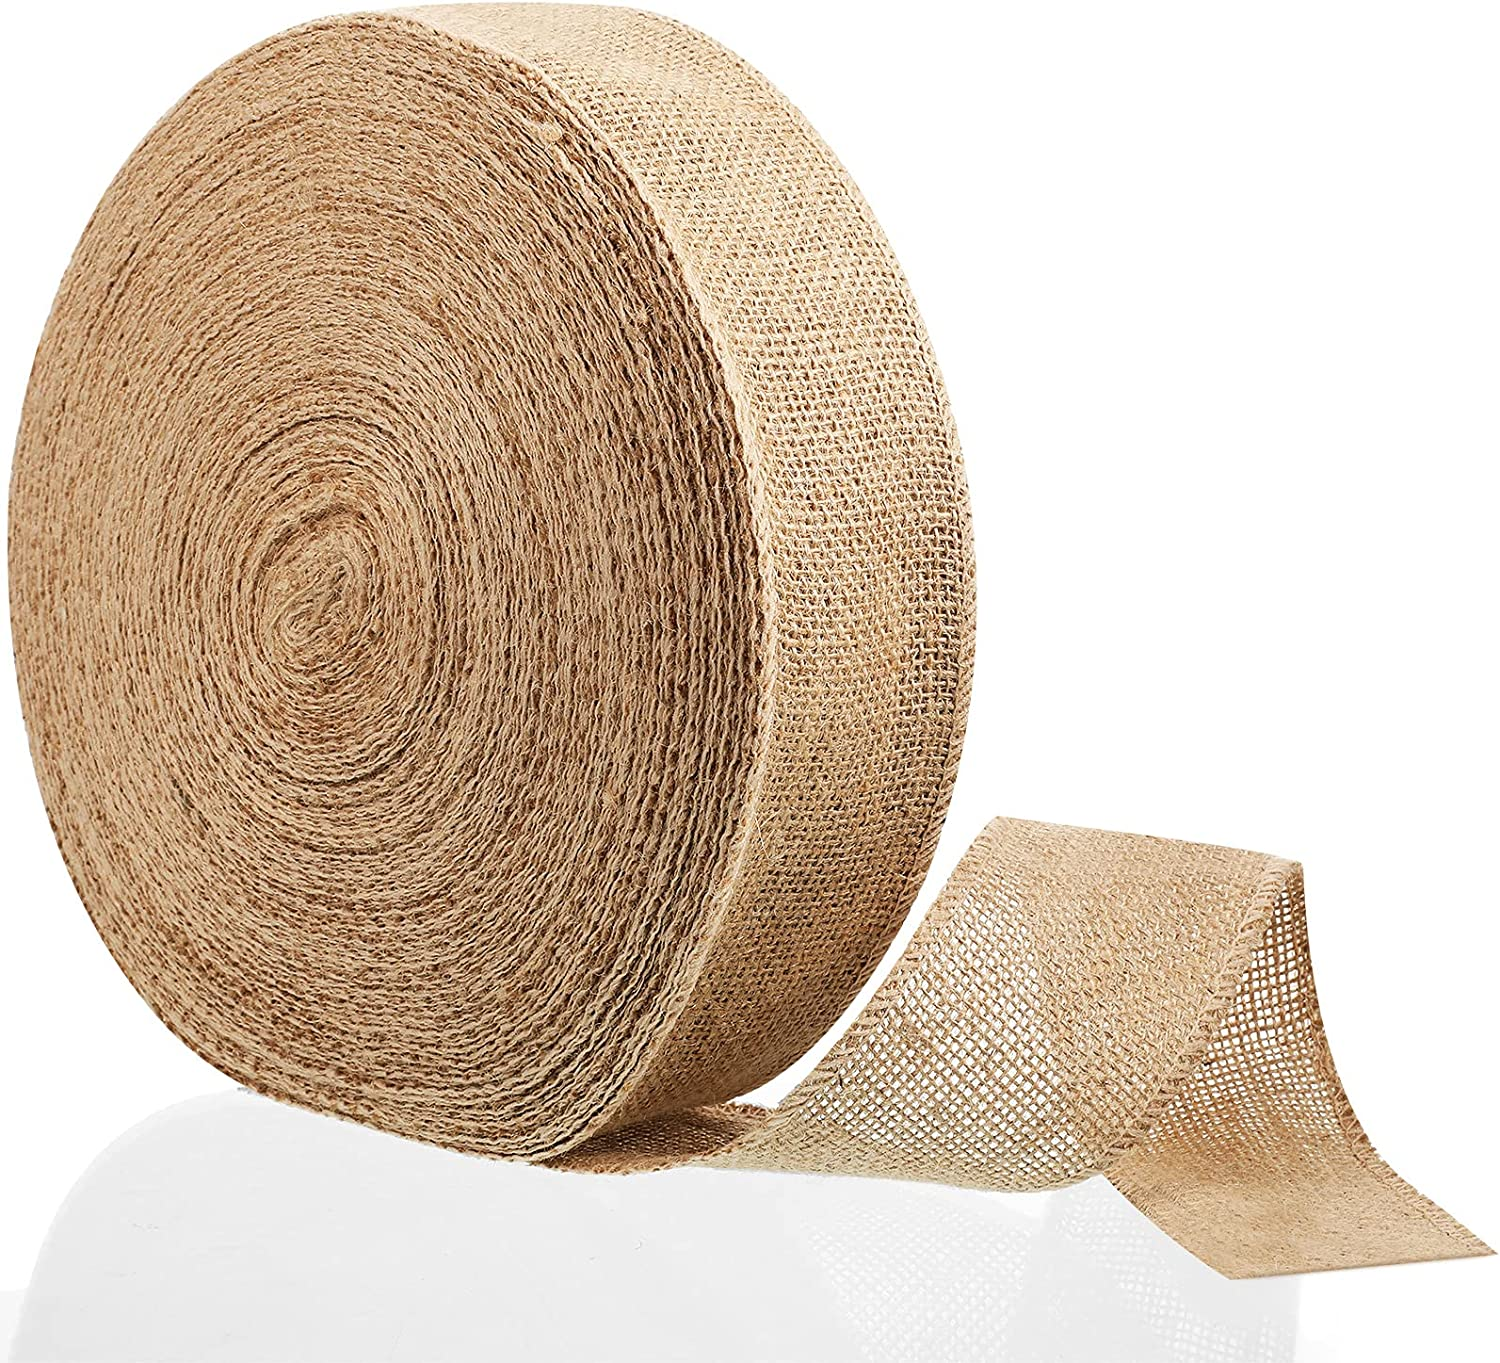 49 Yards Burlap Super Special In a popularity SALE held Fabric Ribbon Natural Jute Crafts